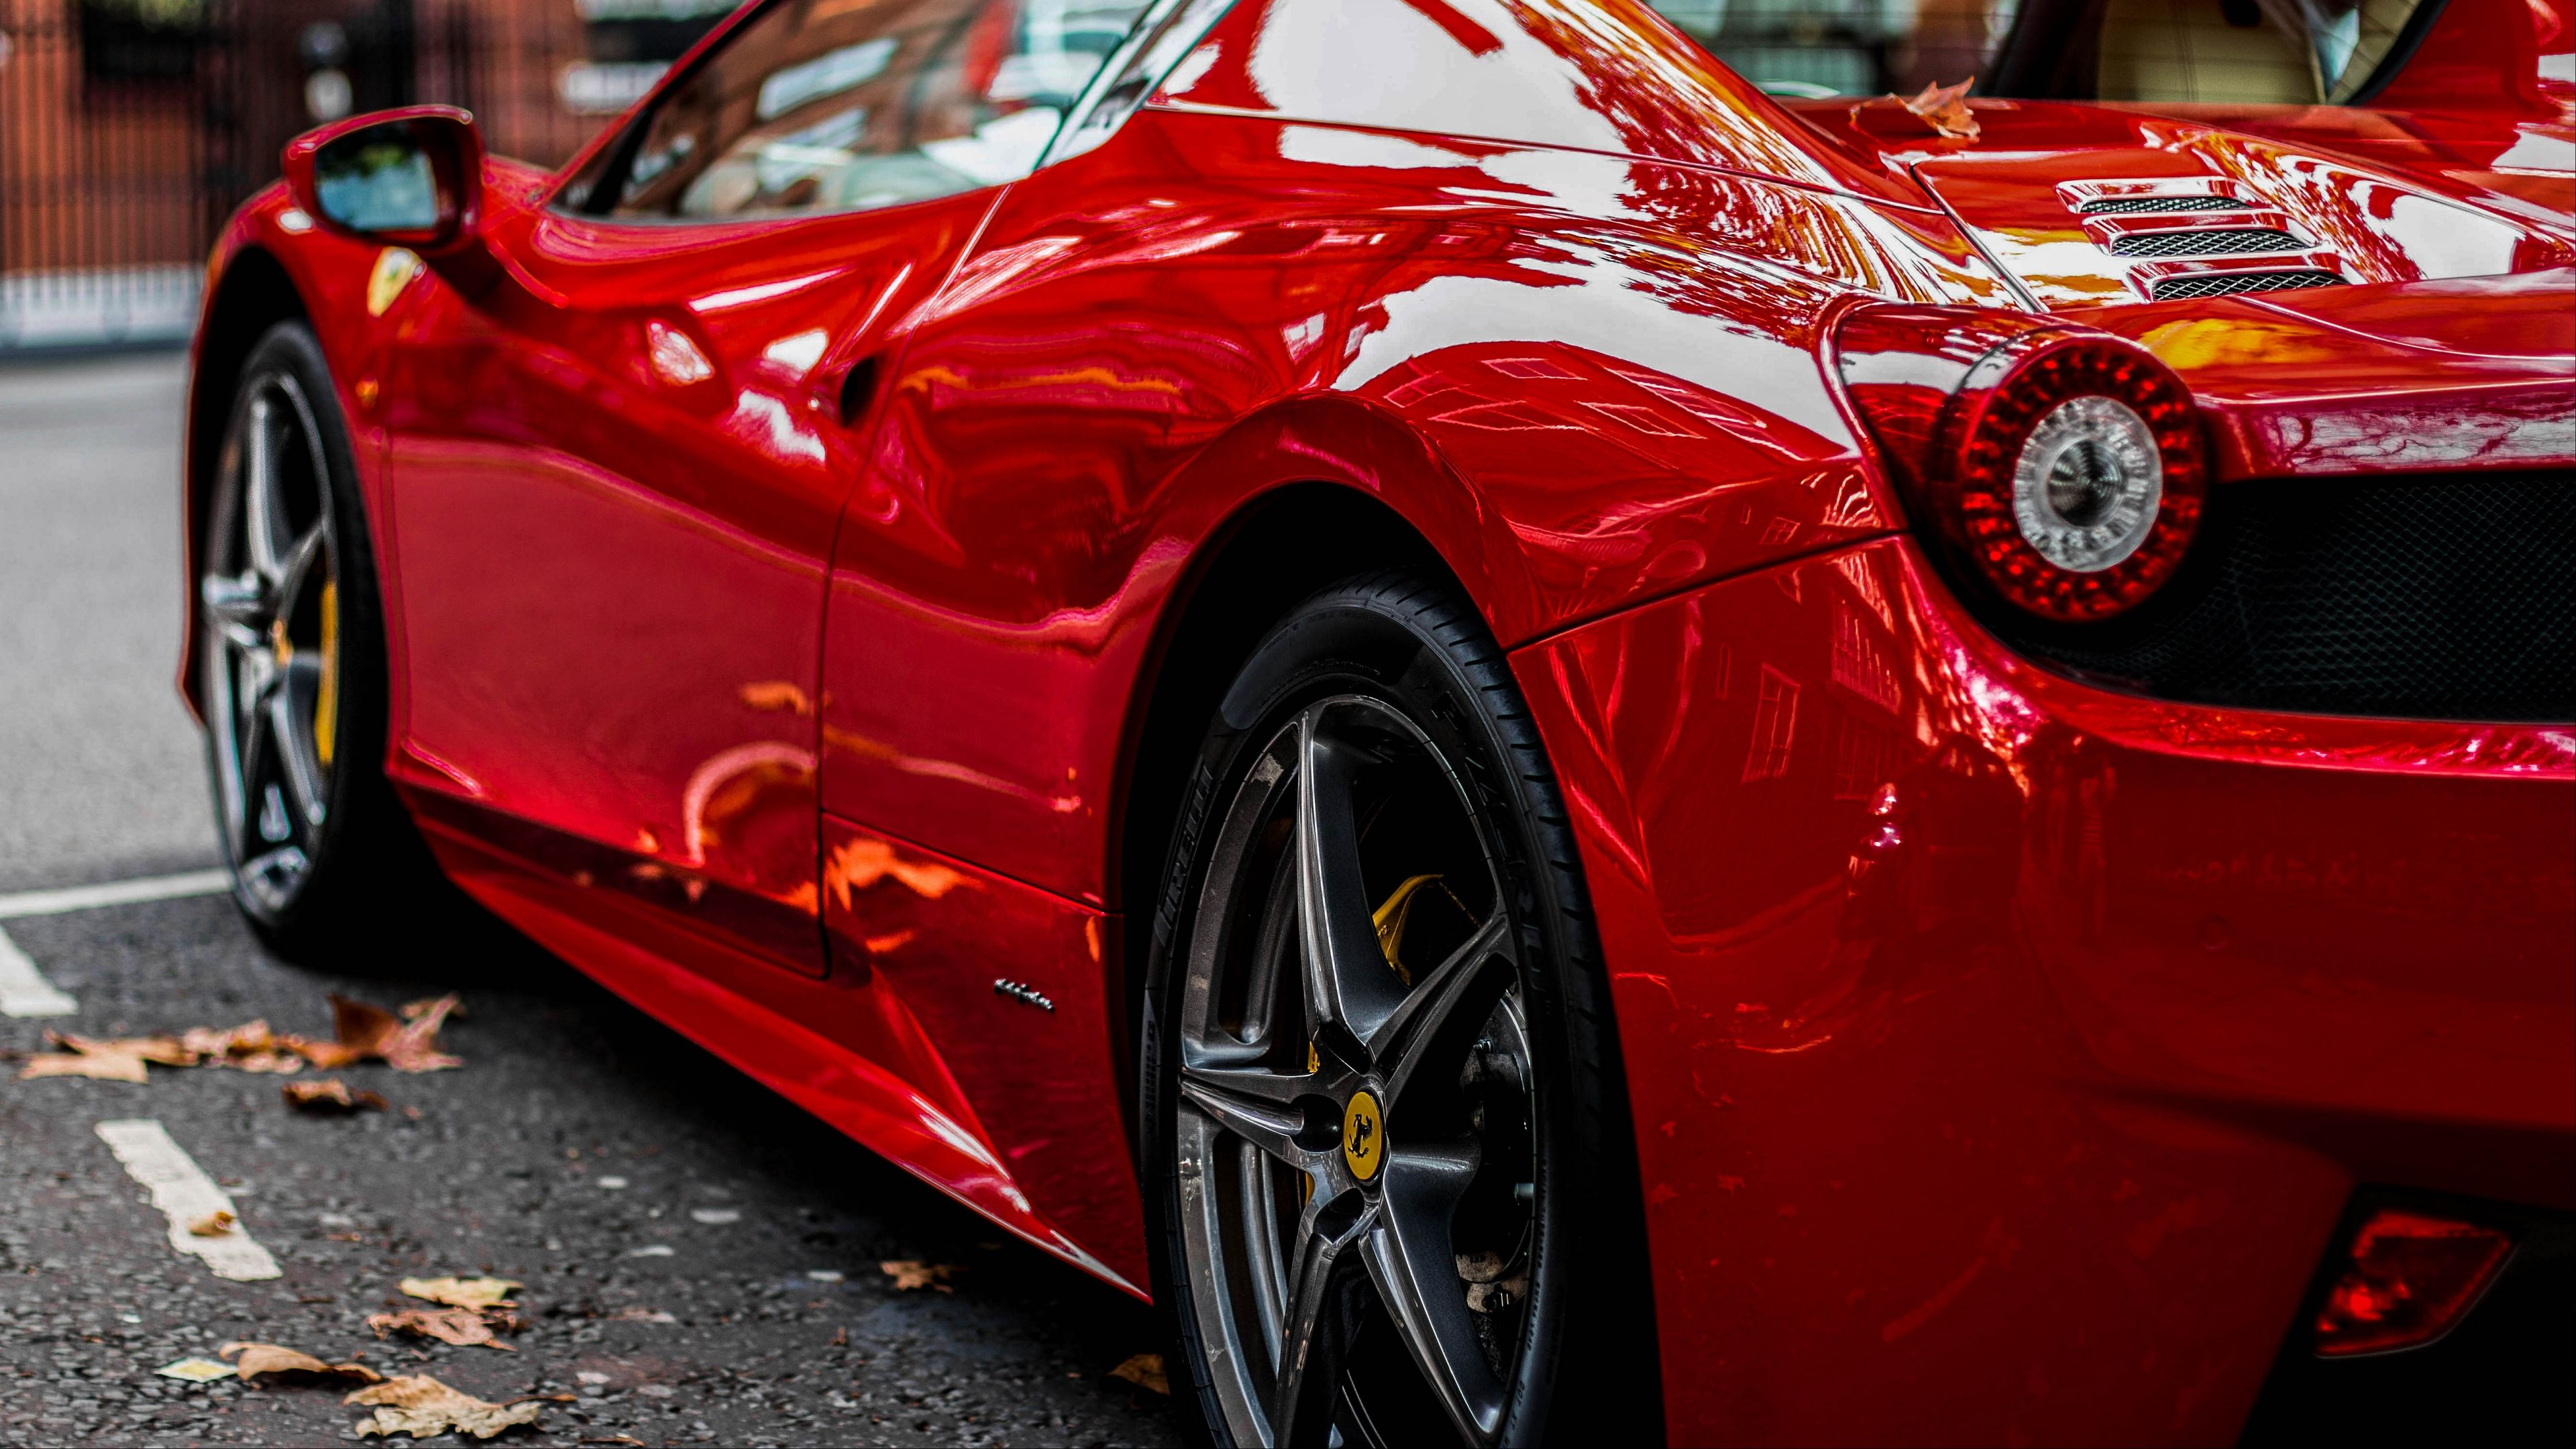 Sports Car Red Rear View 4k Sports Car Red Rear View Sports Car Car Wallpapers Car